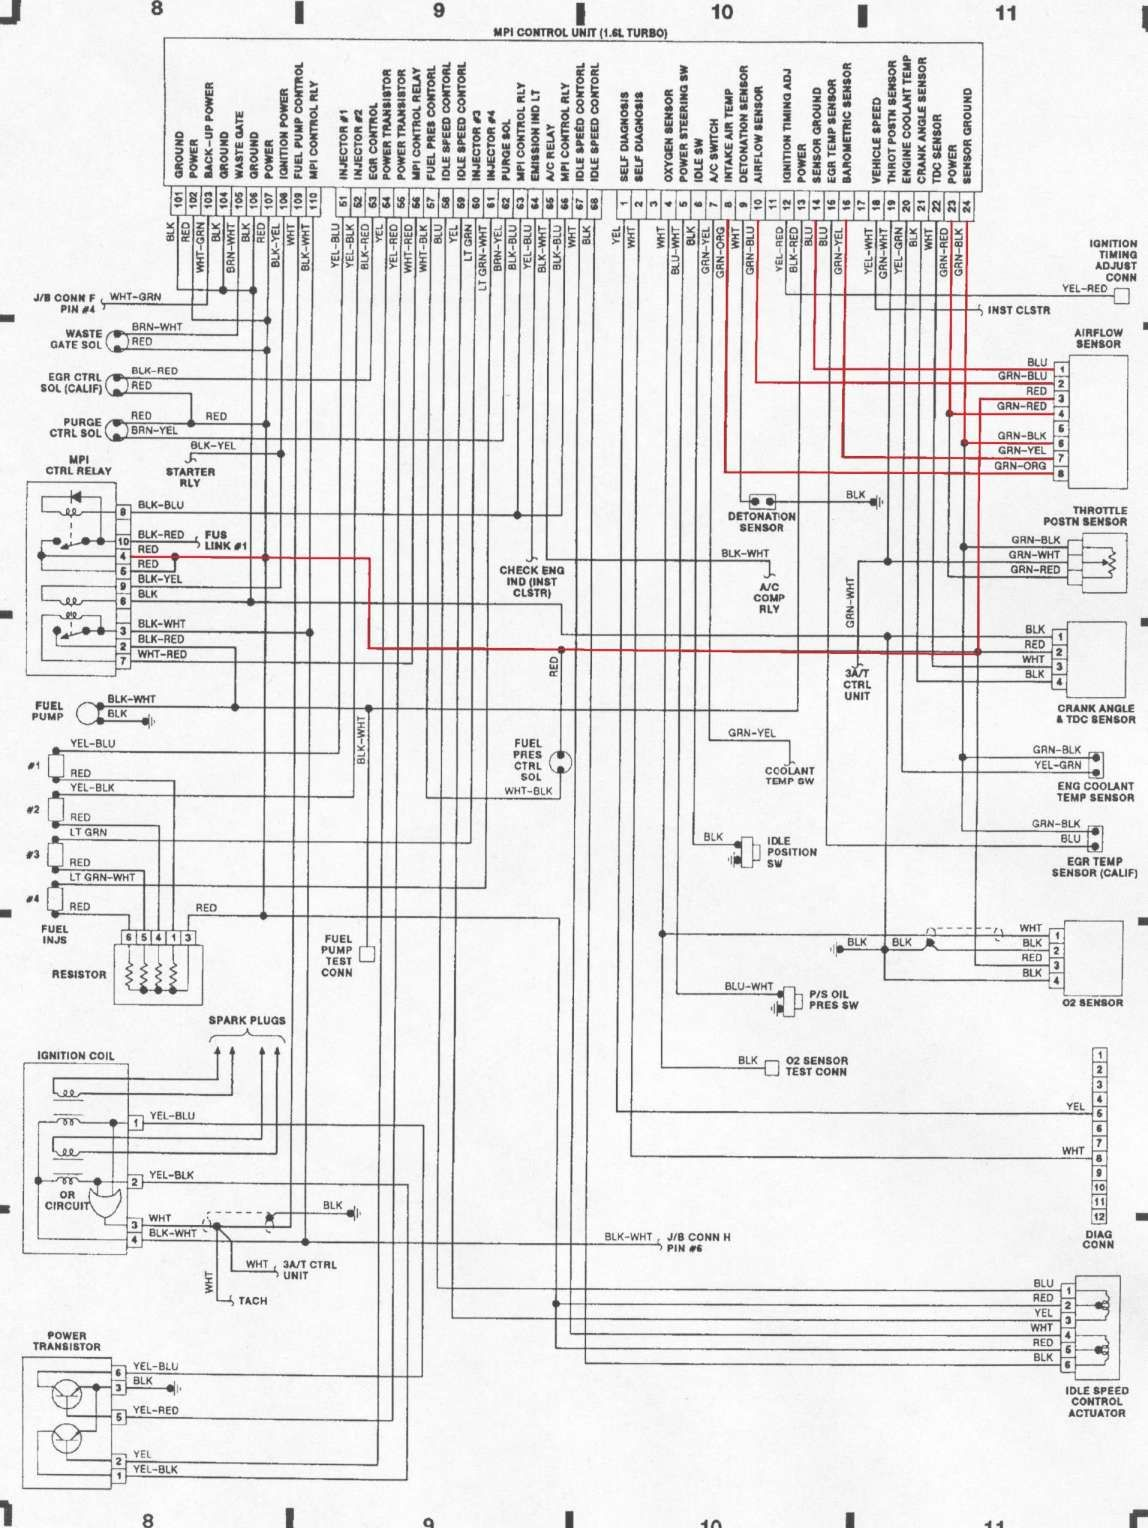 12 Mitsubishi 4g64 Engine Wiring Diagram Engine Diagram In 2020